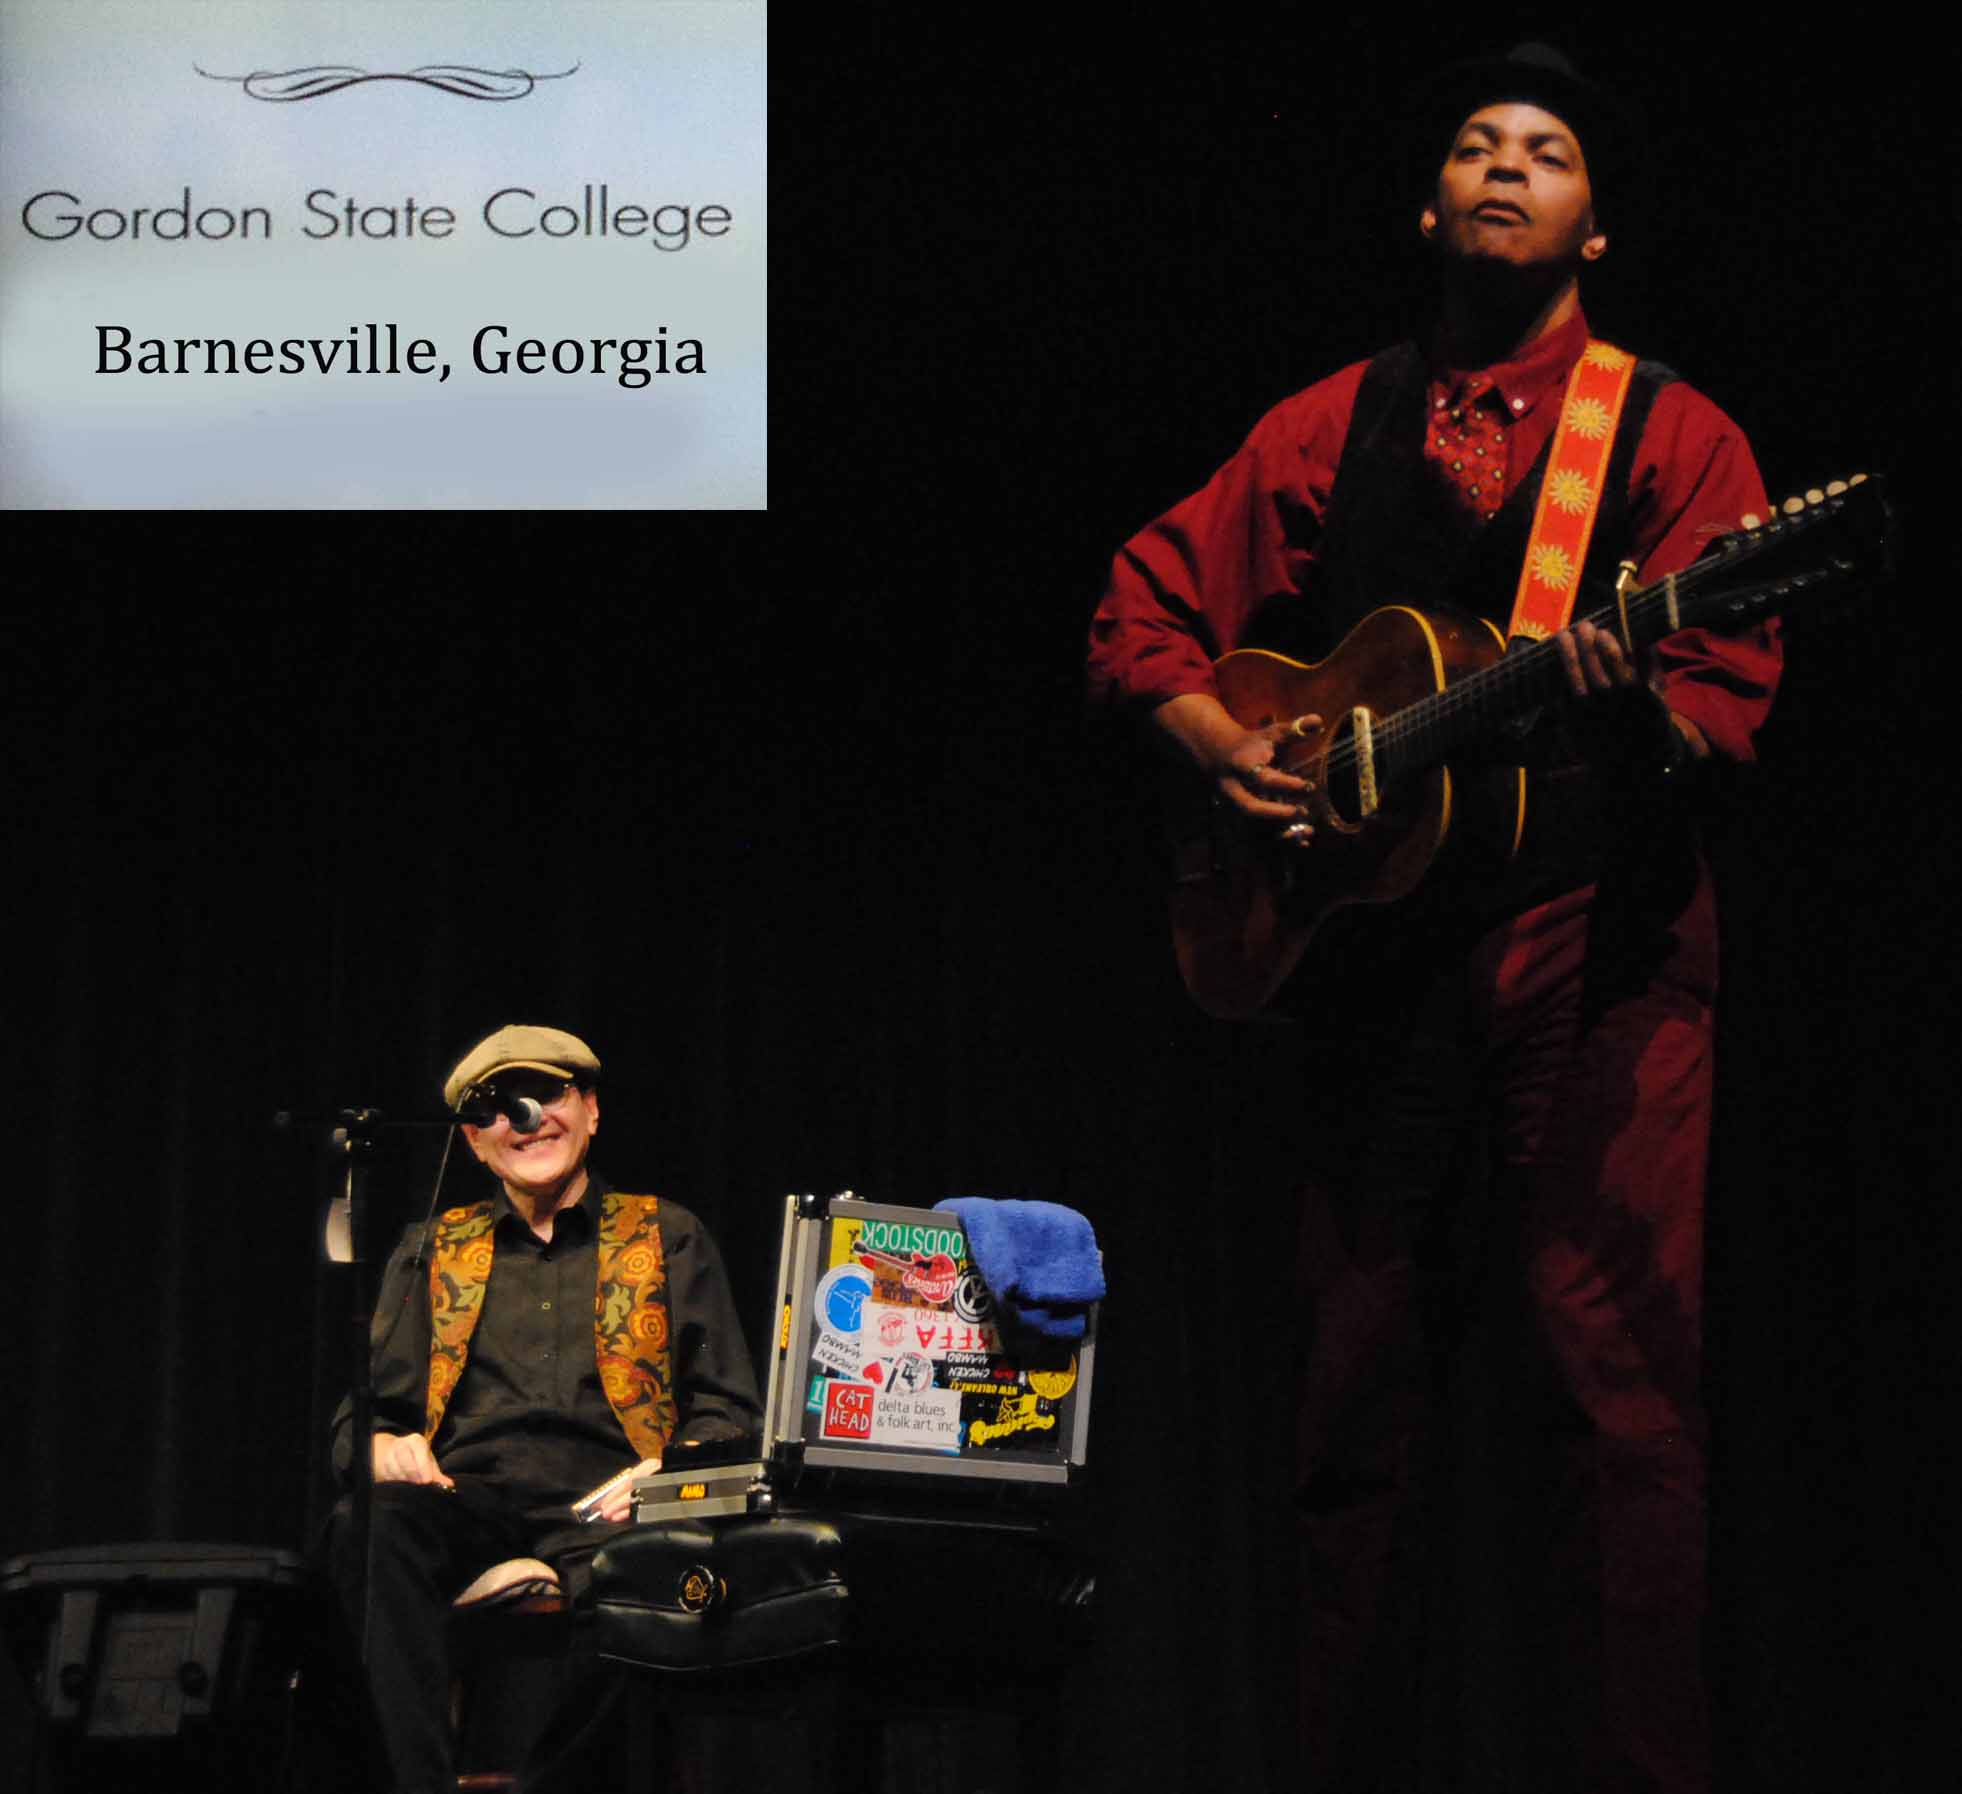 GUY DAVIS & FABRIZIO POGGI 2014 USA TOUR GORDON COLLEGE Barnesville, Georgia